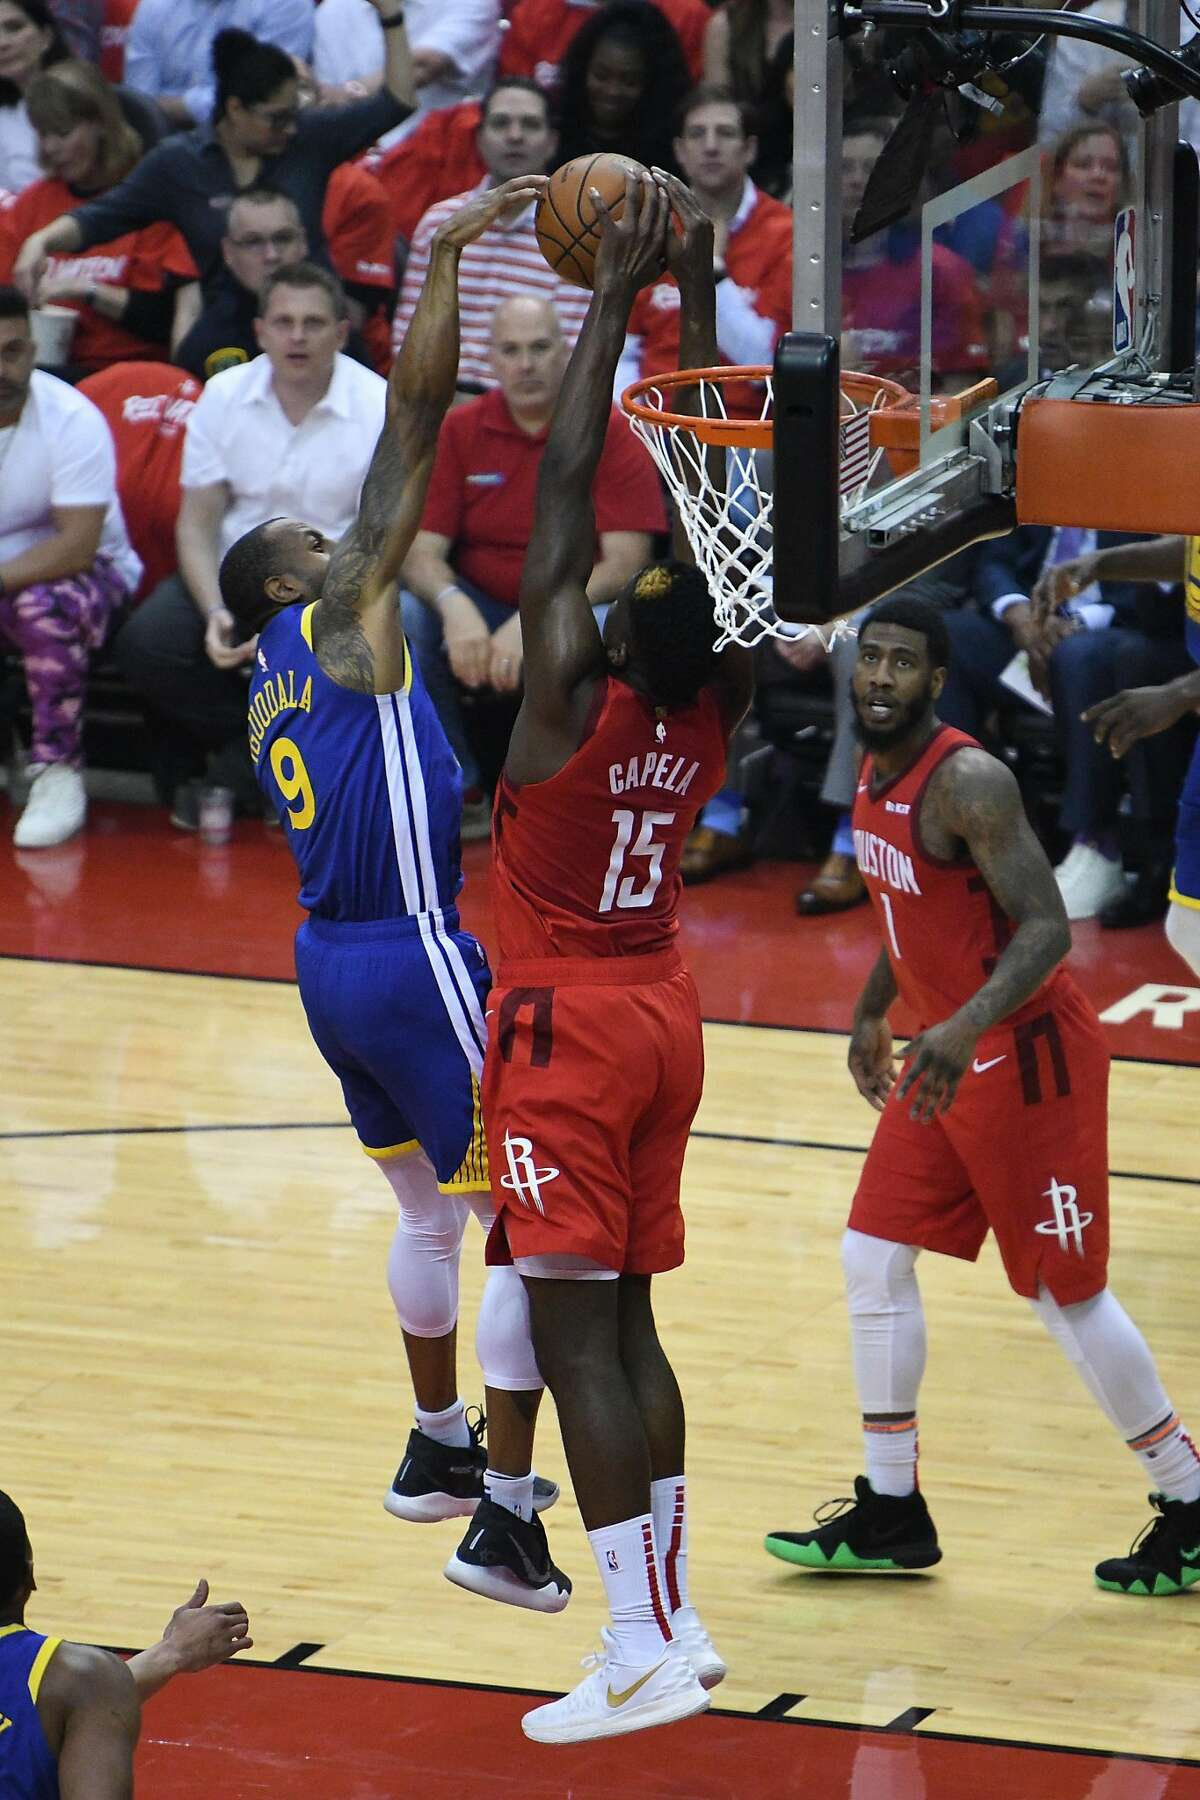 Houston Rockets center Clint Capela (15) blocks Golden State Warriors guard Andre Iguodala (9) at the rim in the first half during game 3 of the NBA Western Conference Semifinals between the Golden State Warriors and Houston Rockets at the Toyota Center in Houston, Texas, on Saturday, May 4, 2019.